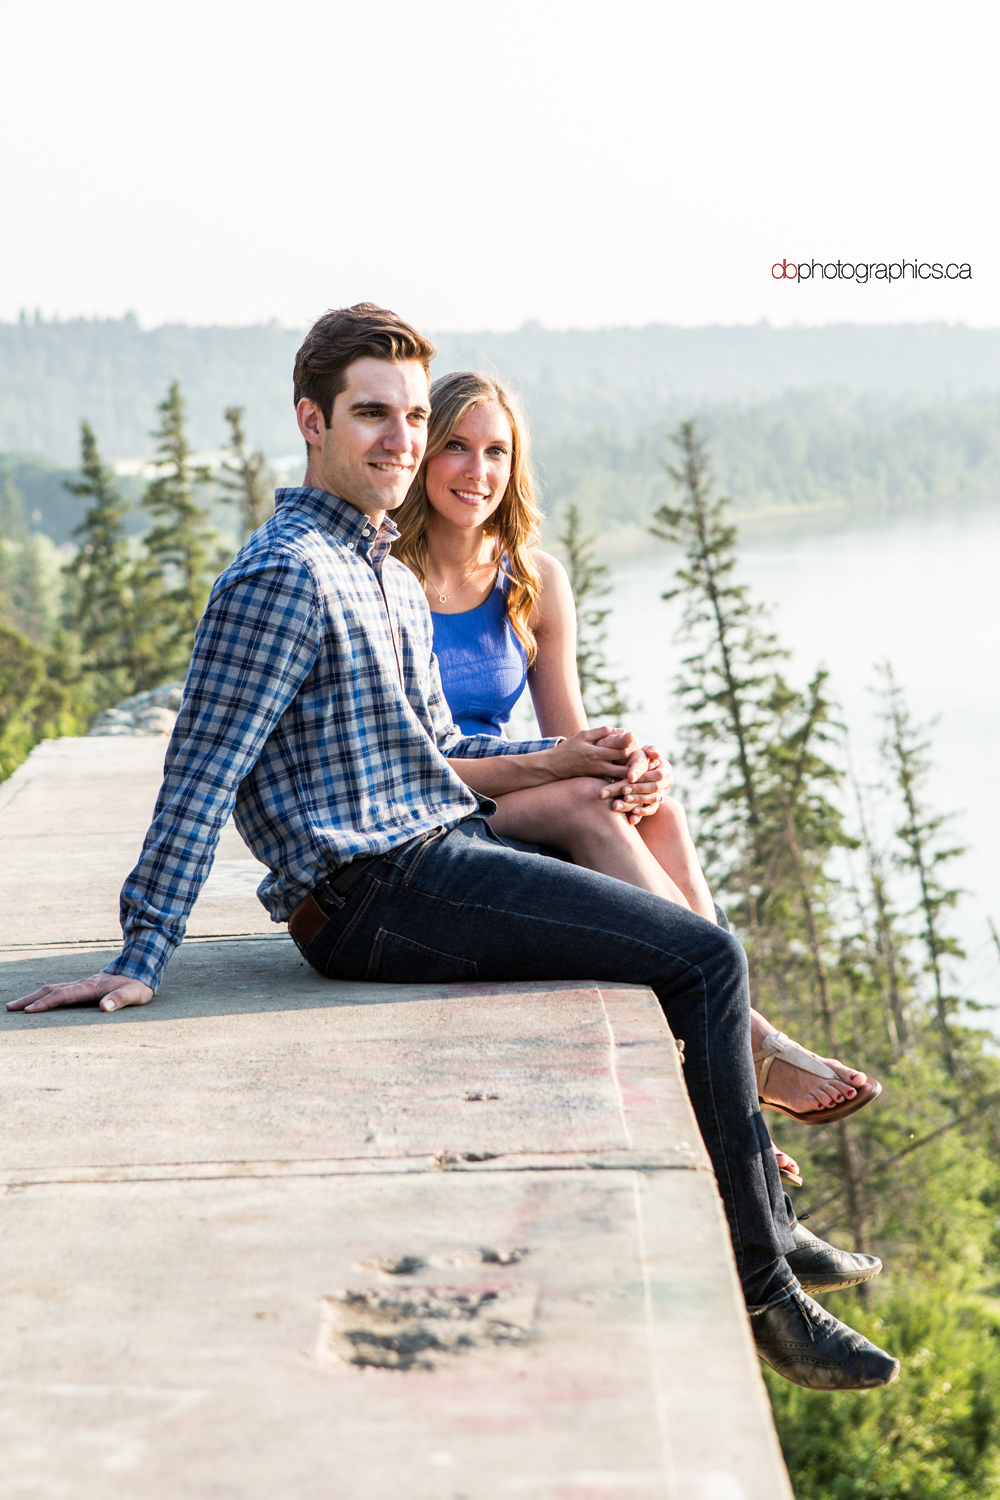 Ben & Melissa - Engagement Session - 20140713 - 0025.jpg